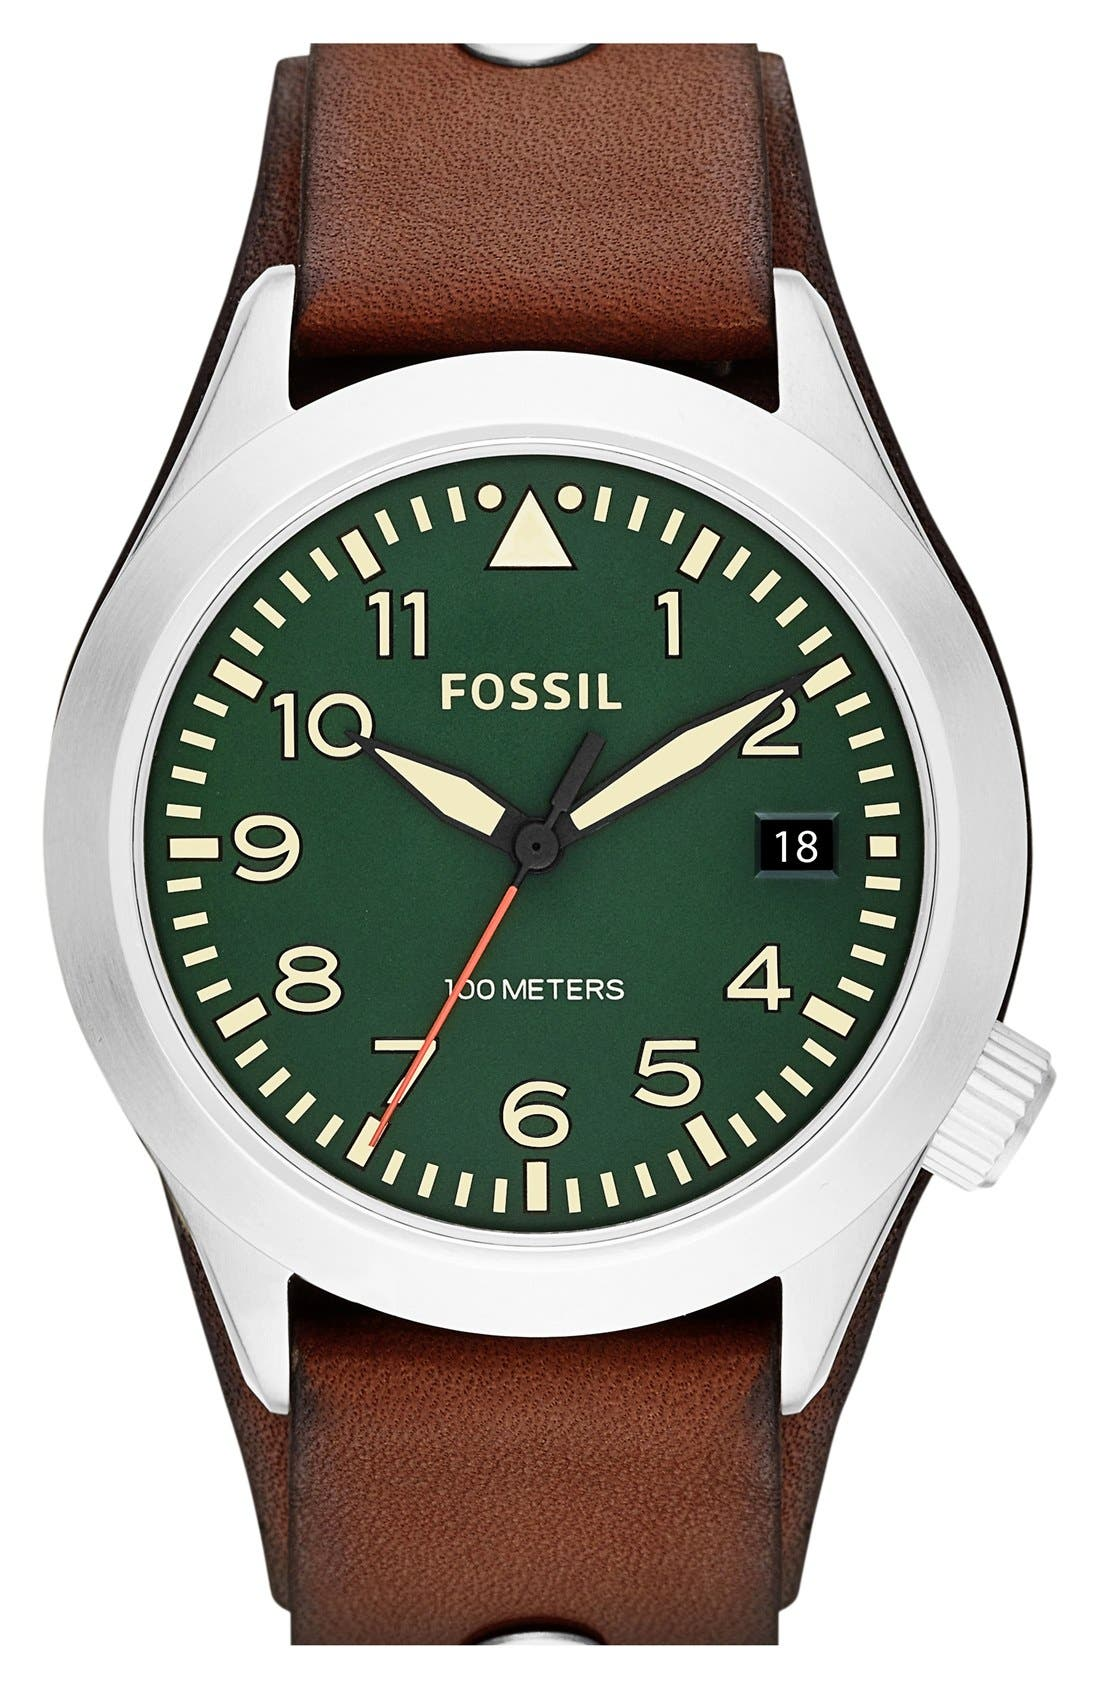 Main Image - Fossil 'Aeroflite' Leather Strap Watch, 44mm